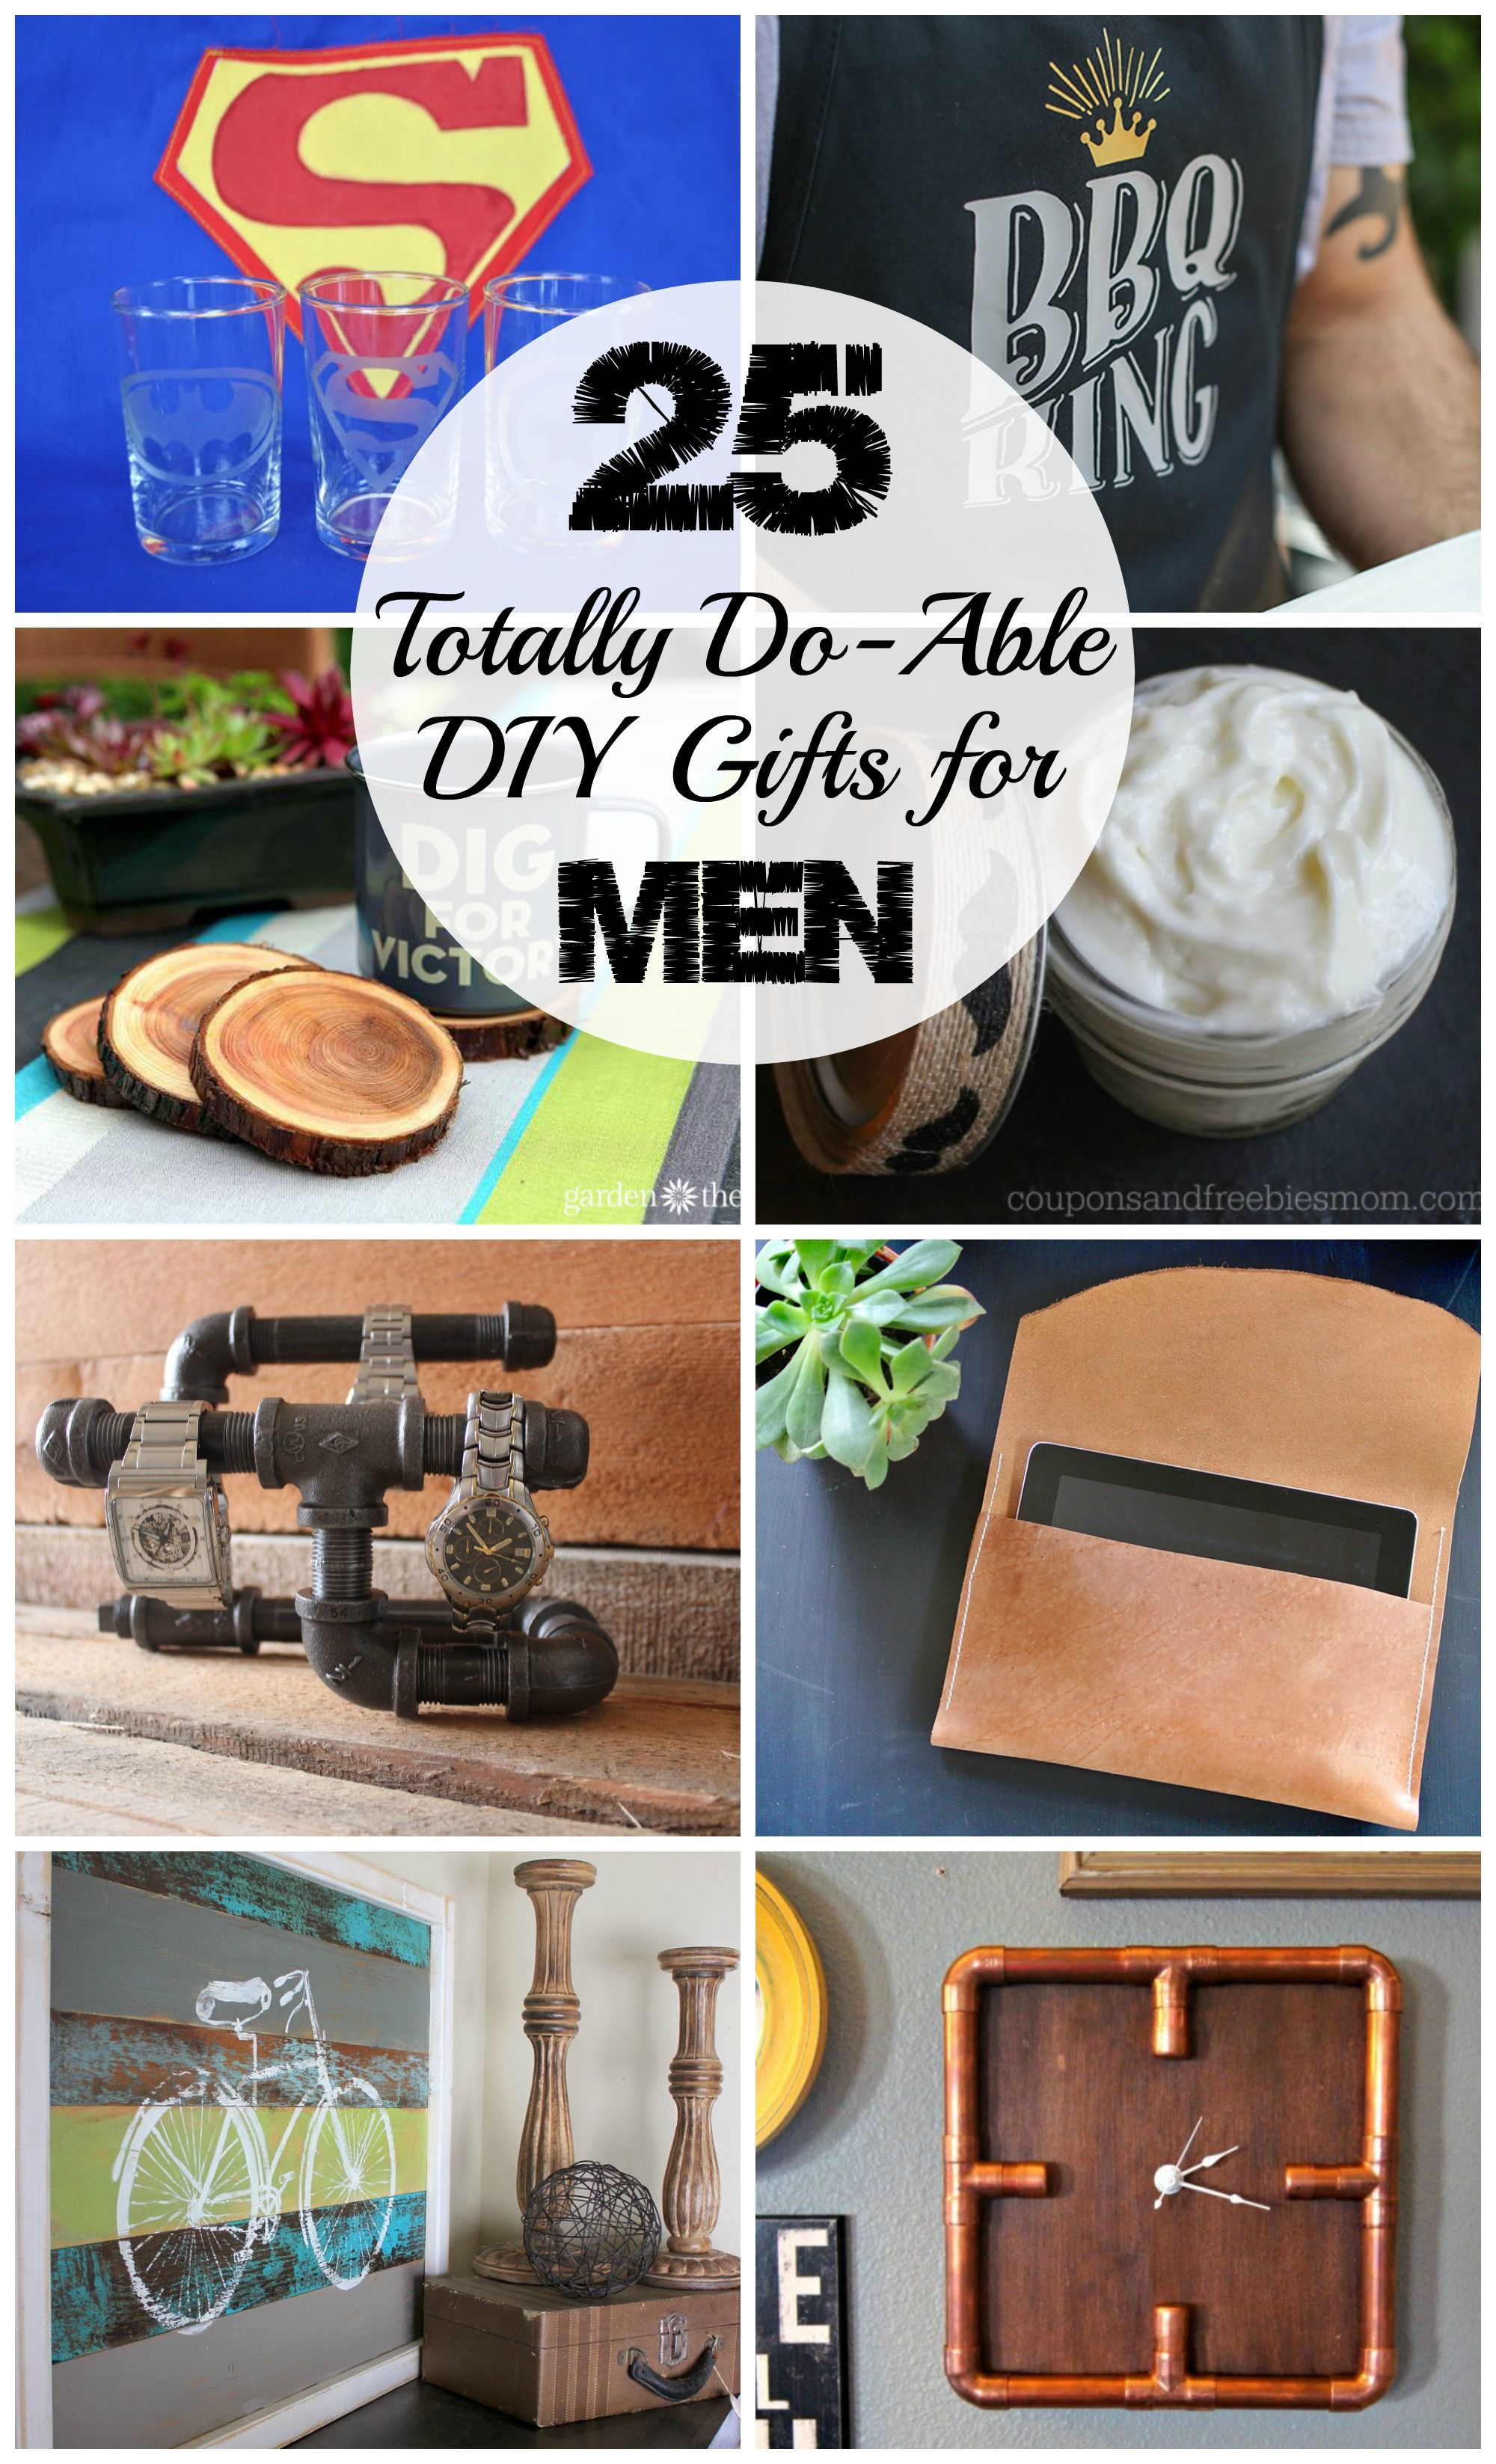 25 Diy Gifts For Men Christmas Gifts Diy Gifts Diy Gifts For